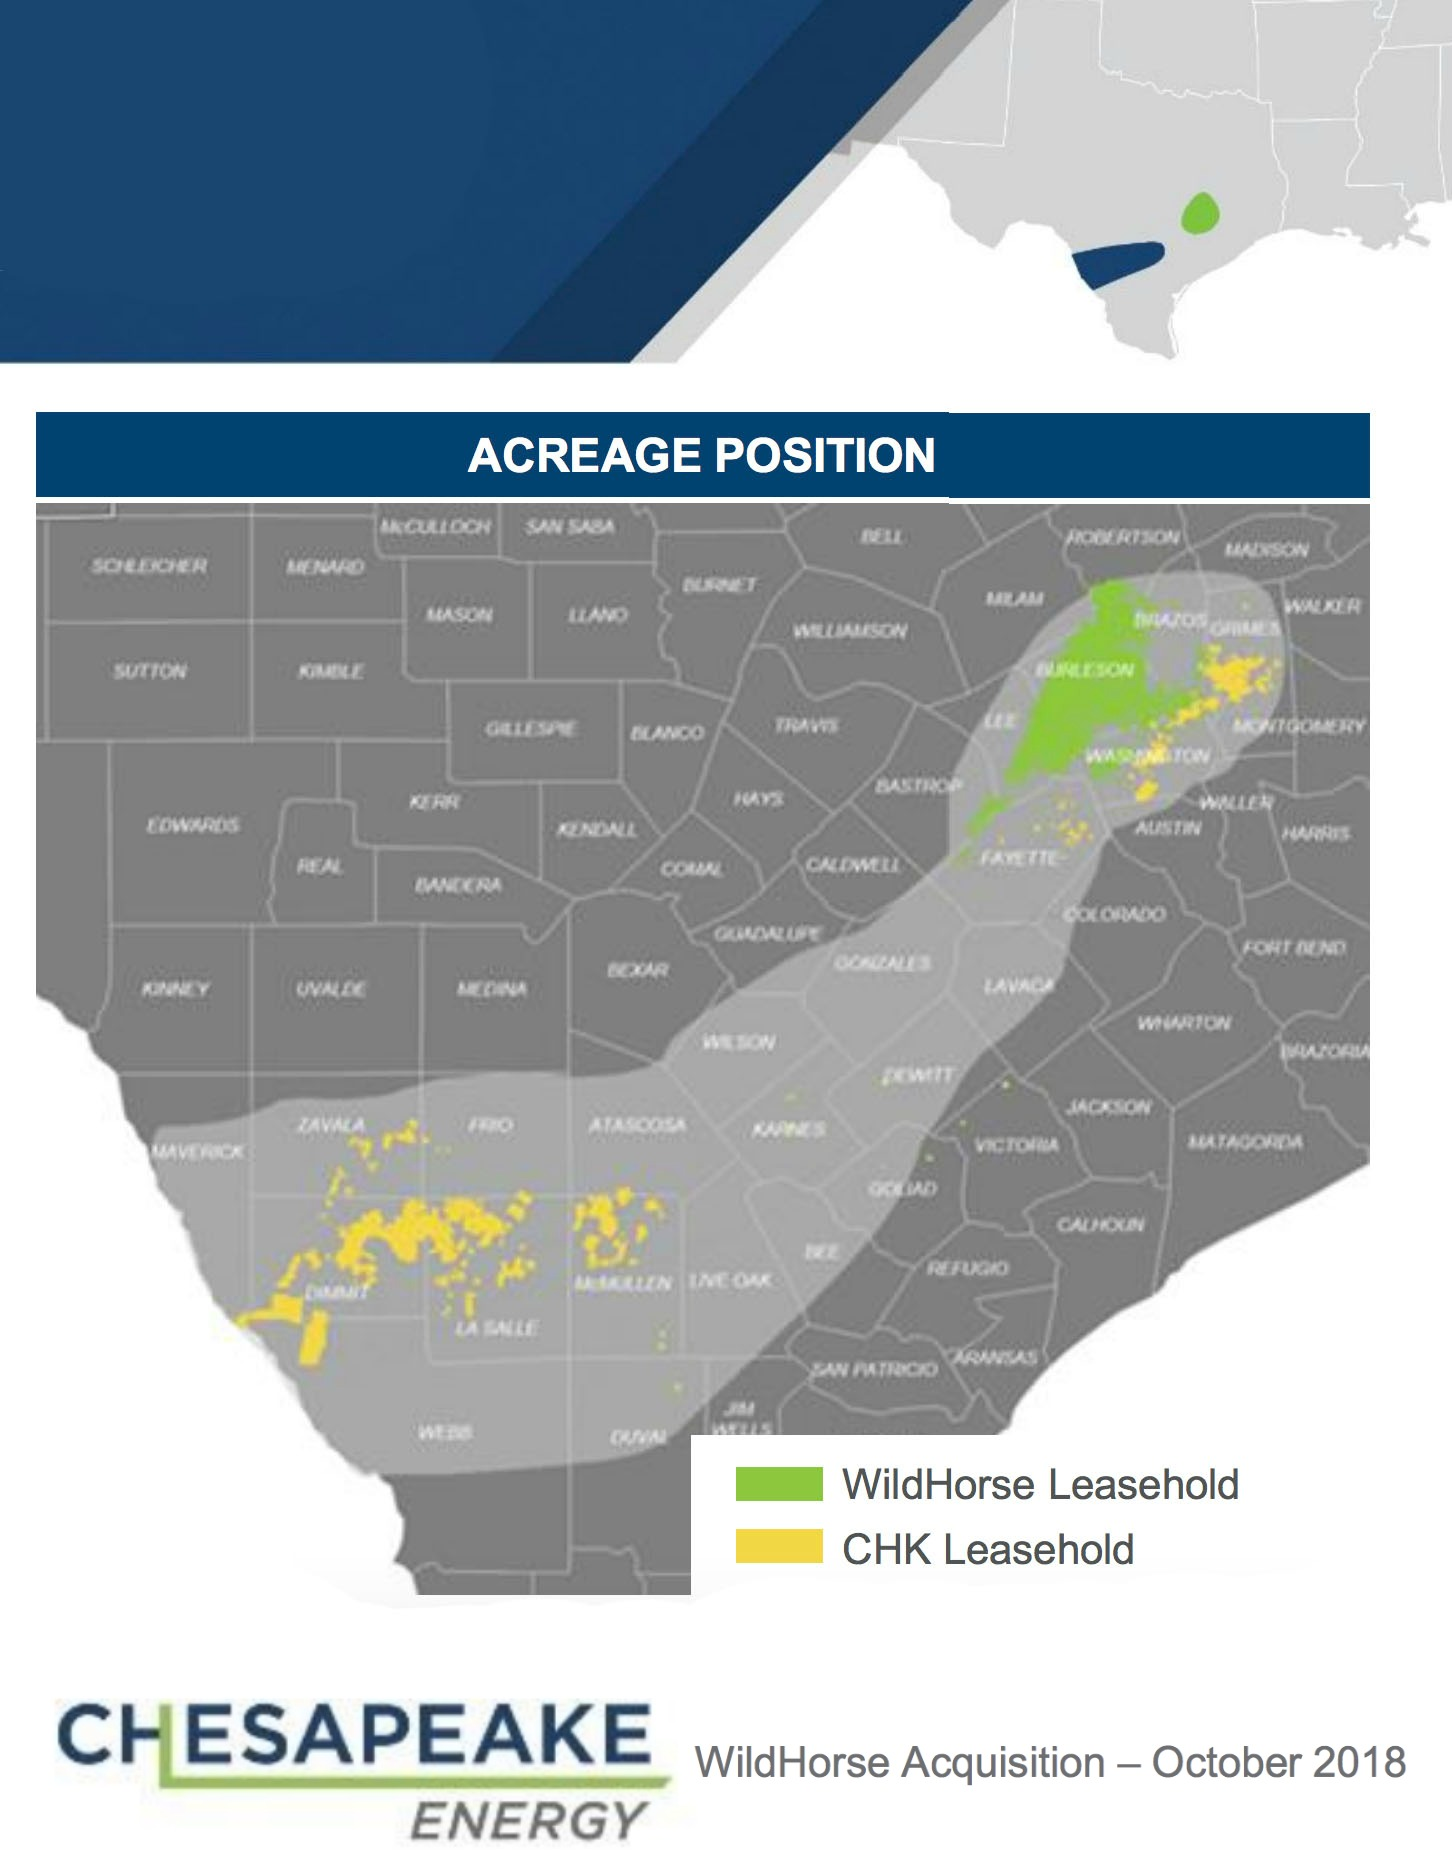 Chesapeake Energy / WildHorse Resource Development Acquisition Asset Map (Source: Chesapeake Energy Inc.)